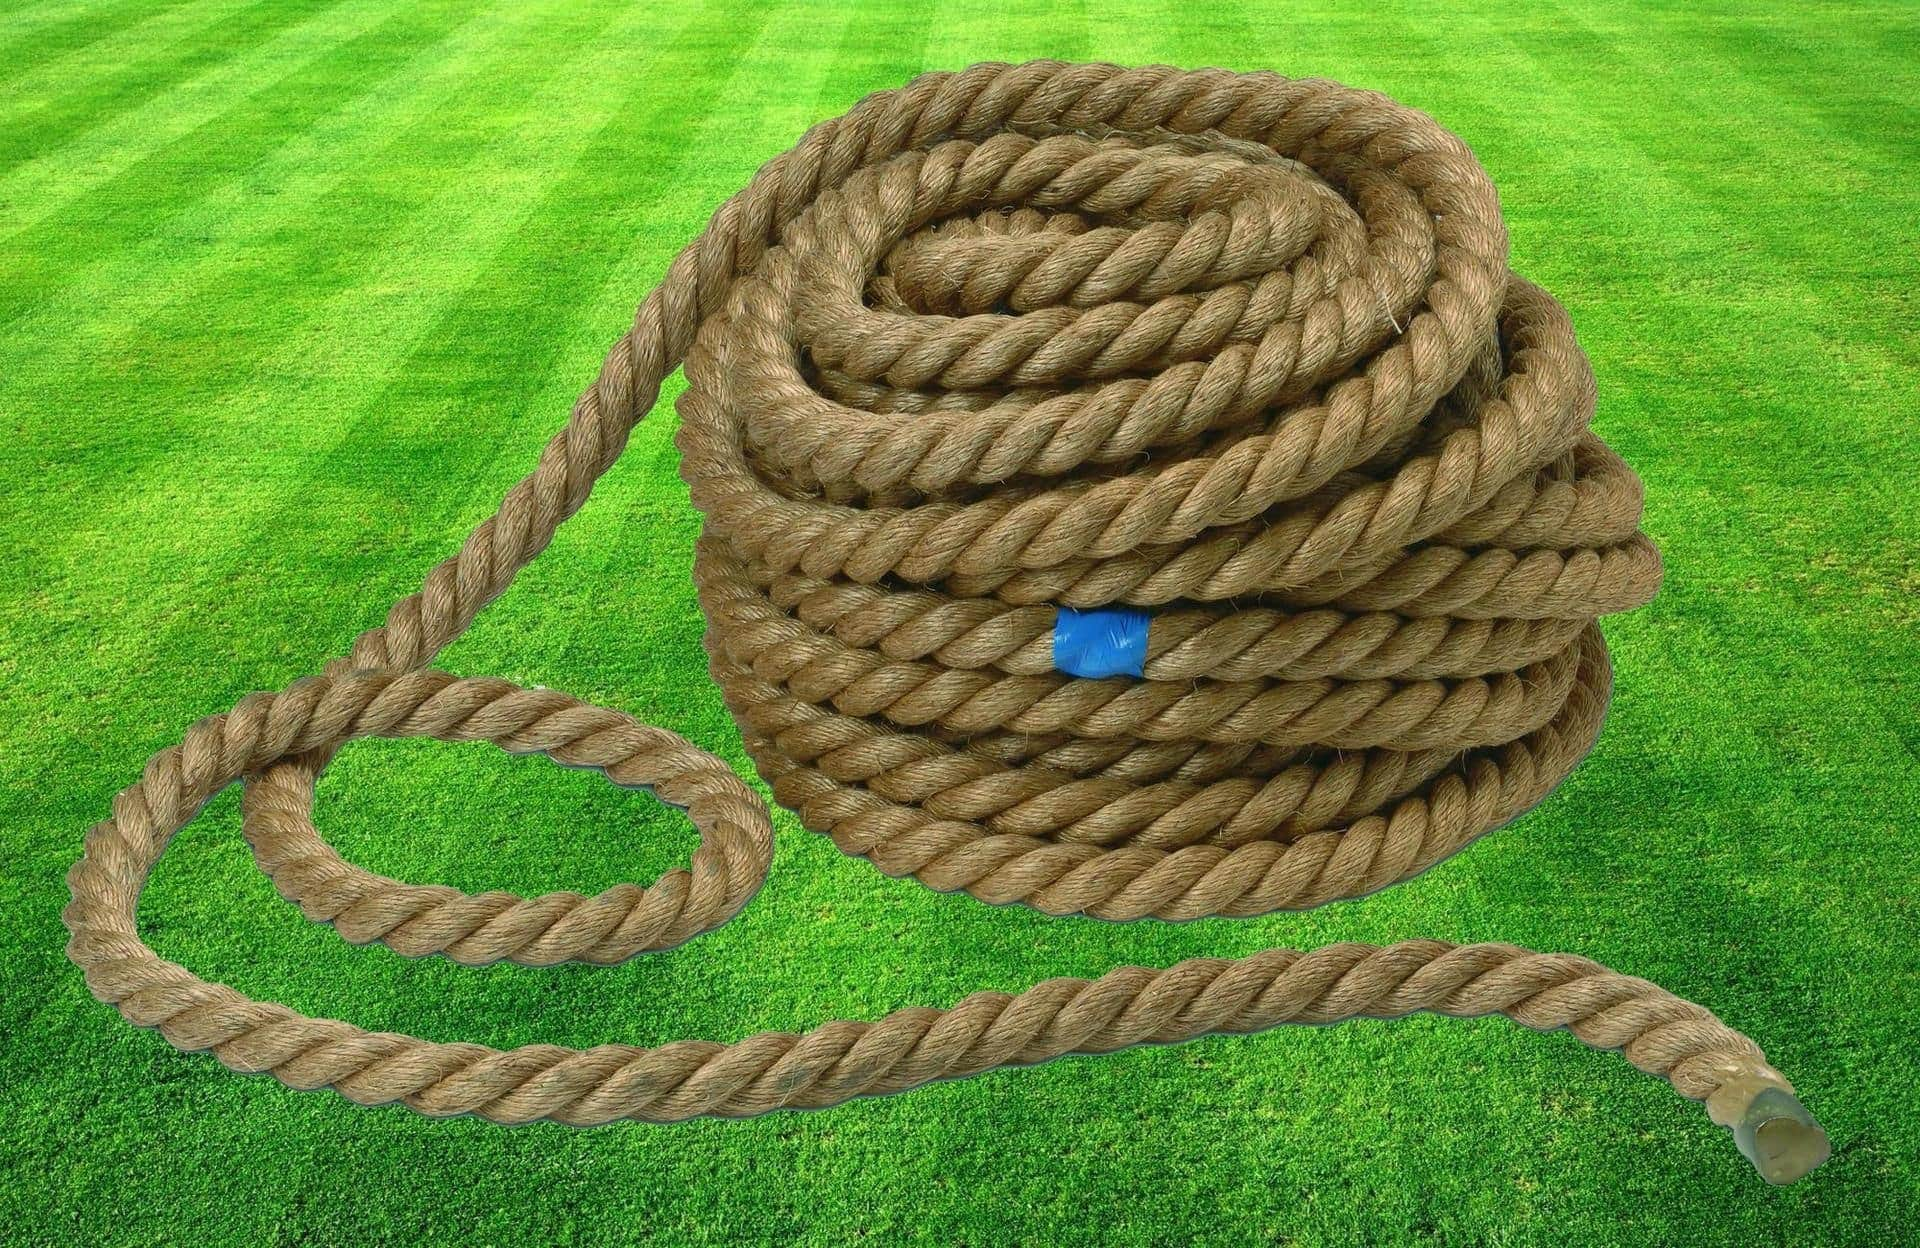 rope dream meaning, dream about rope, rope dream interpretation, seeing in a dream rope